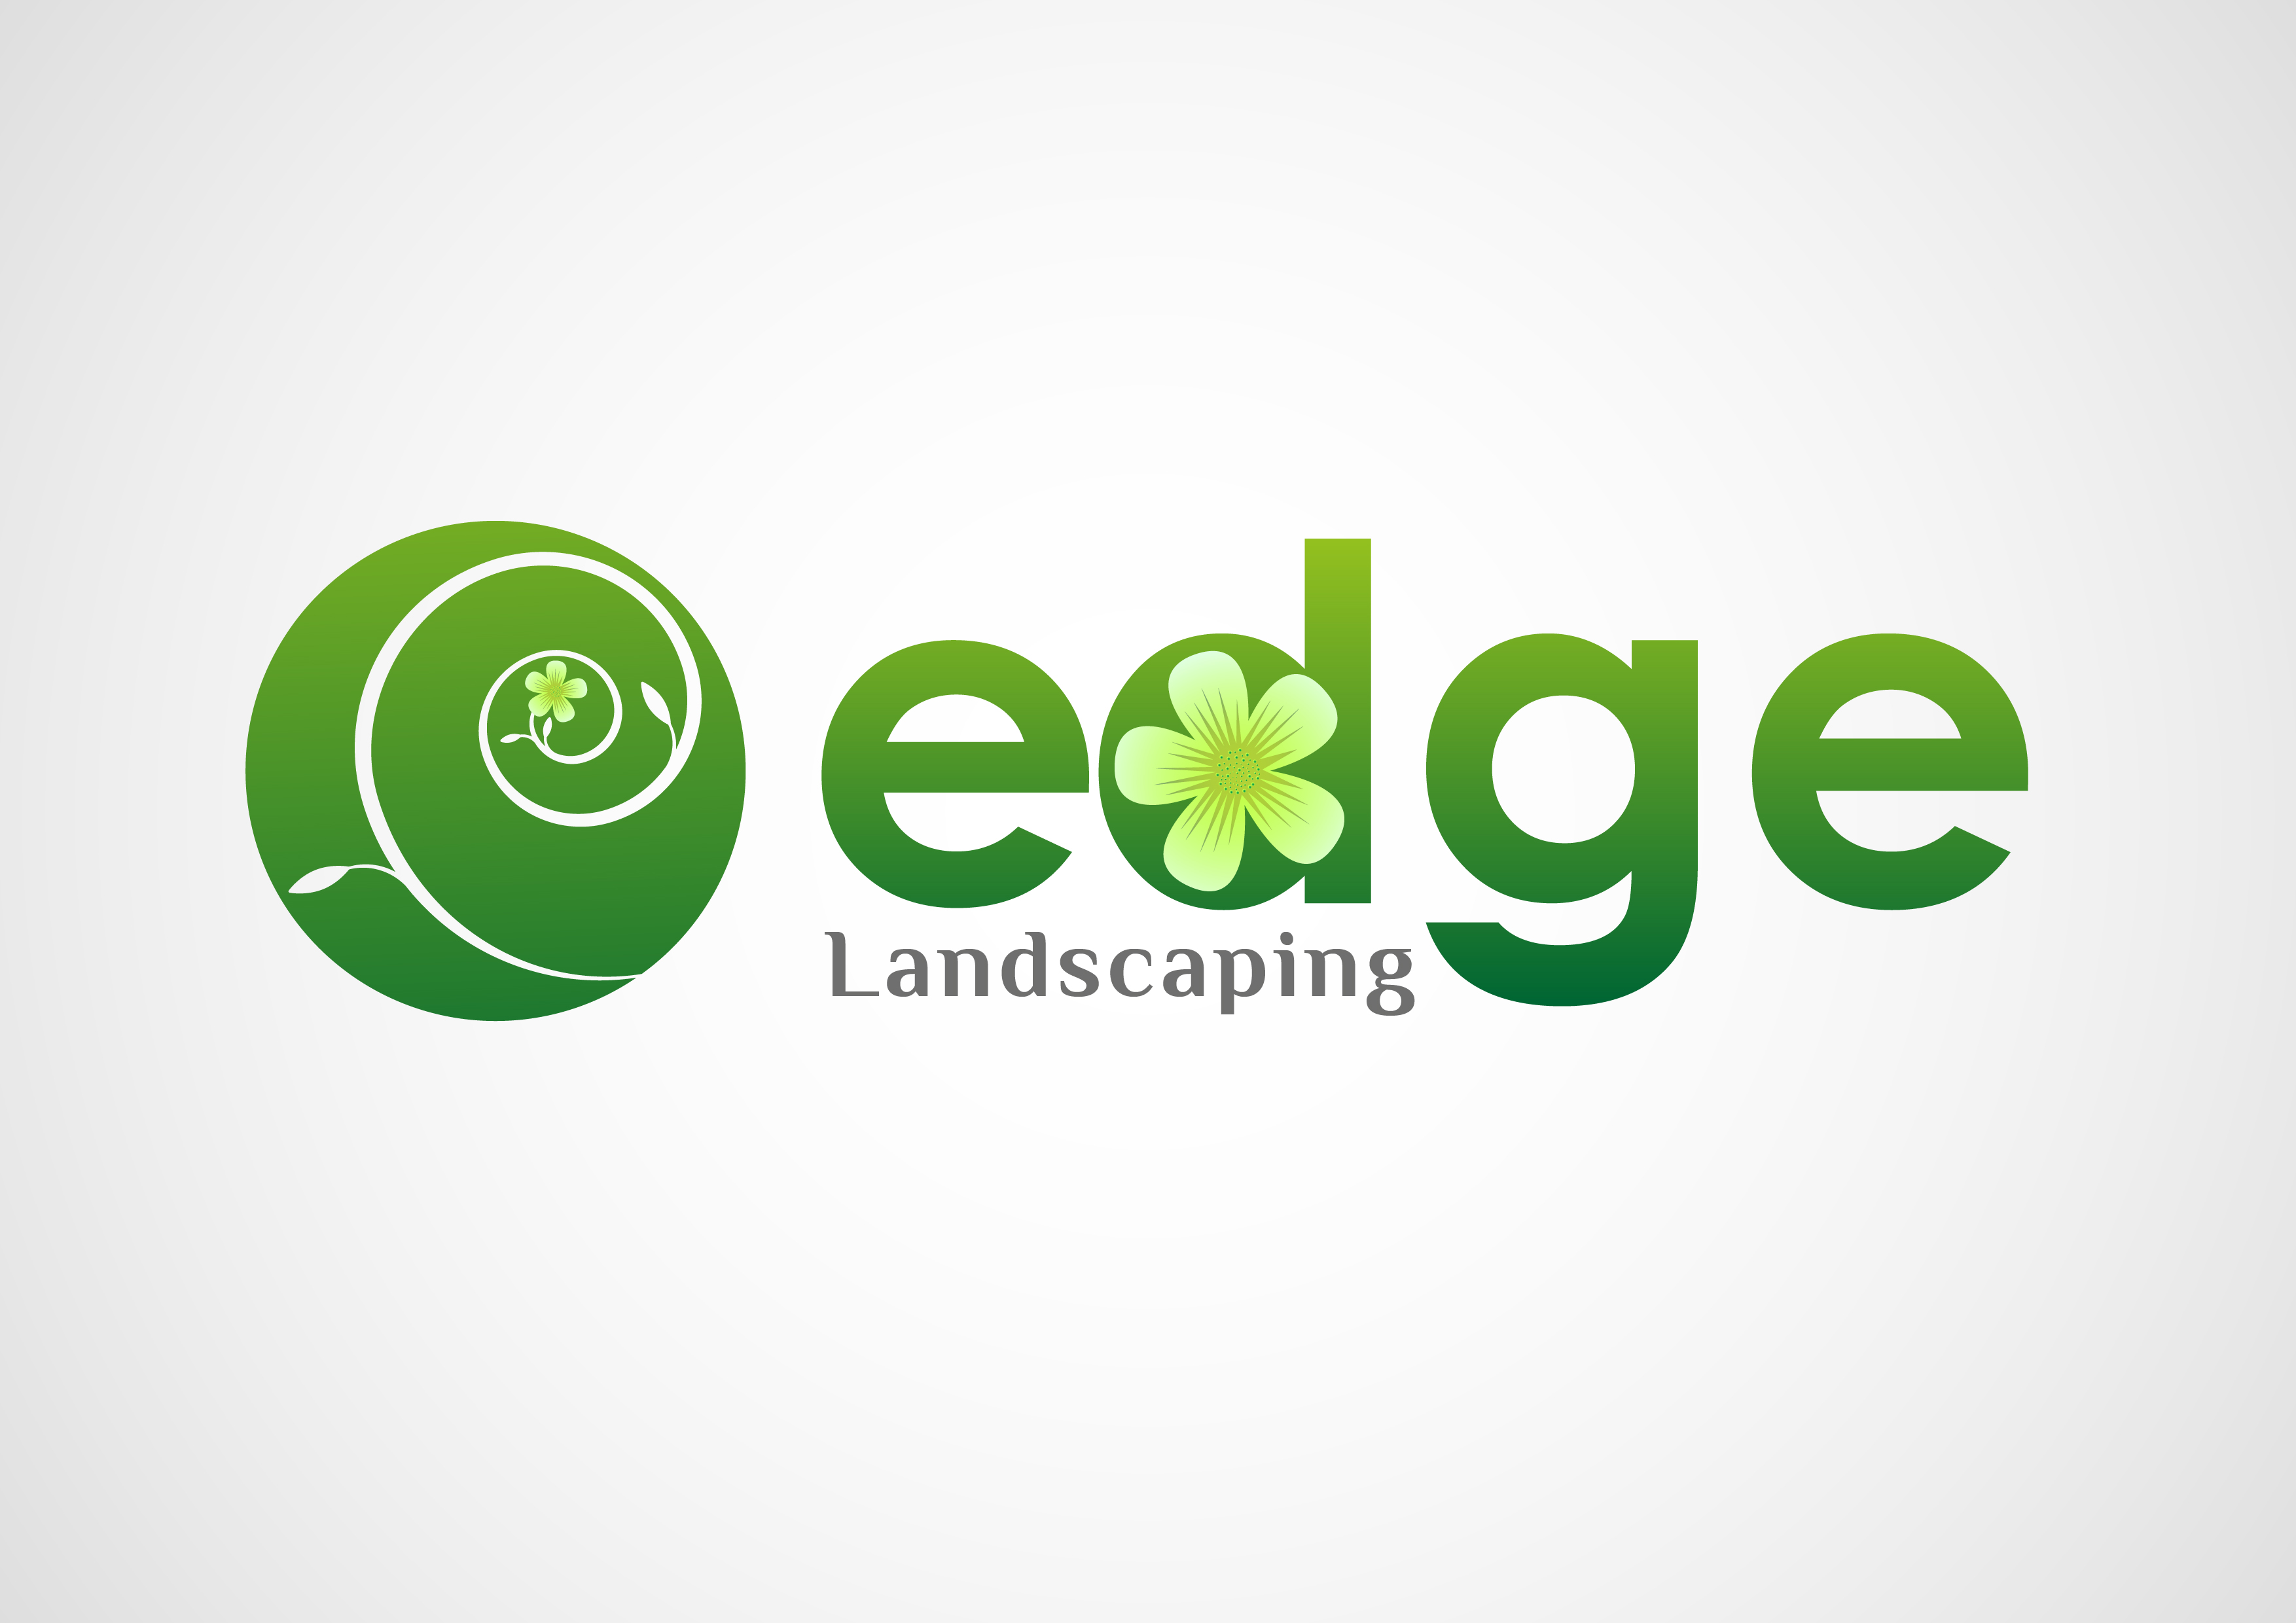 Logo Design by 3draw - Entry No. 96 in the Logo Design Contest Inspiring Logo Design for Edge Landscaping.